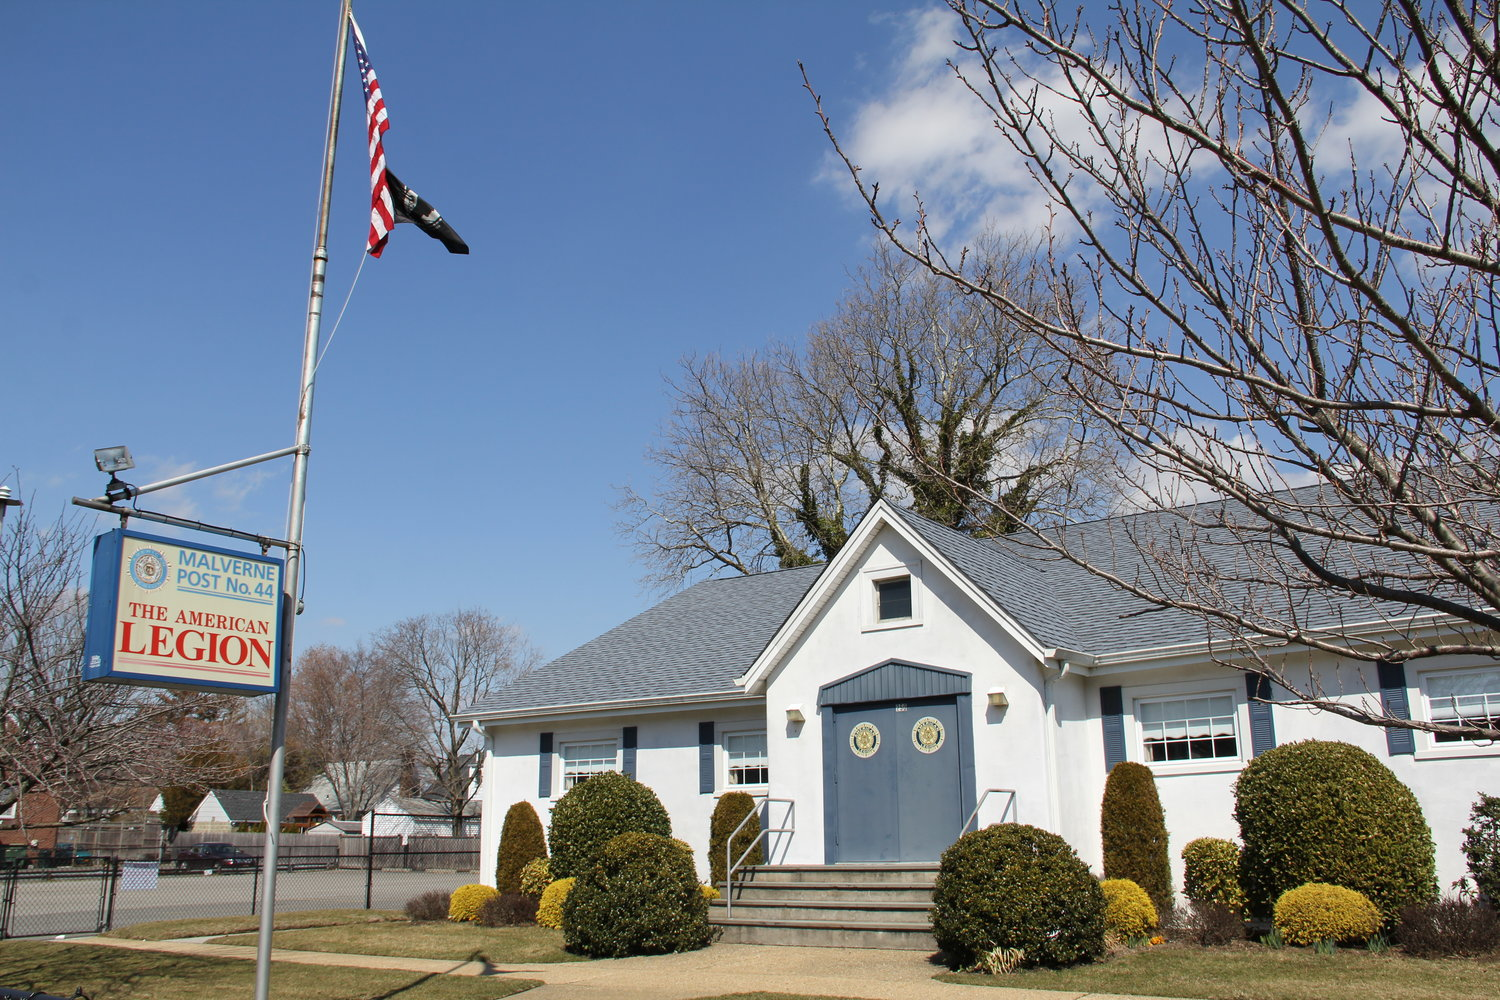 Malverne American Legion Post 44's annual Walk-A-Thon to support veterans, which was scheduled for Saturday, was cancelled. The Post is accepting checks at P.O. Box 44, Malverne, N.Y. 11565.